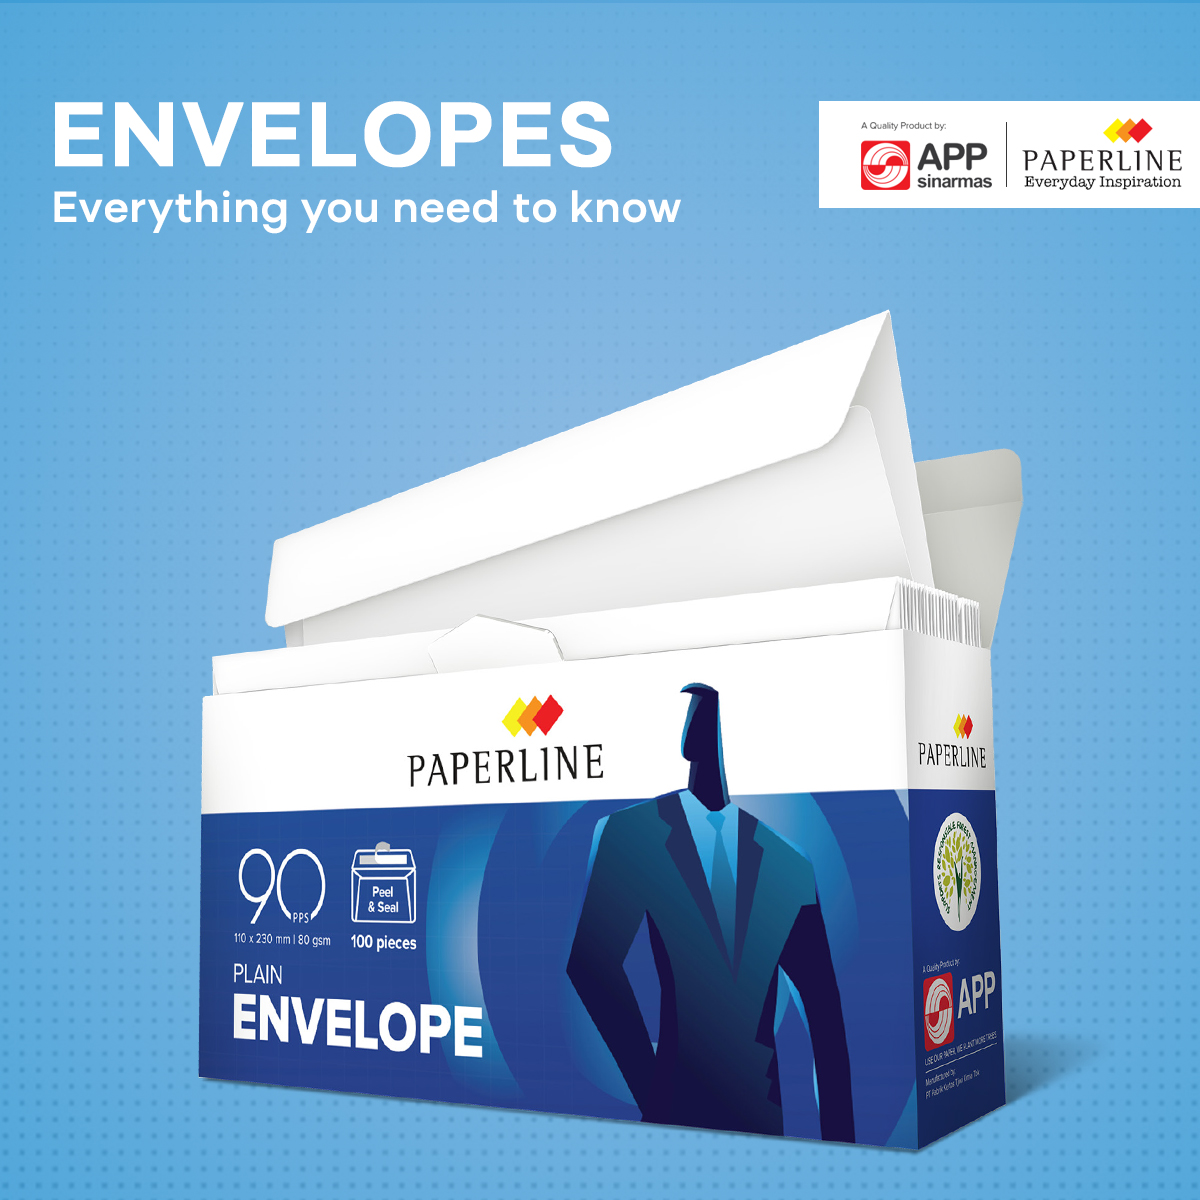 Envelopes – everything you need to know